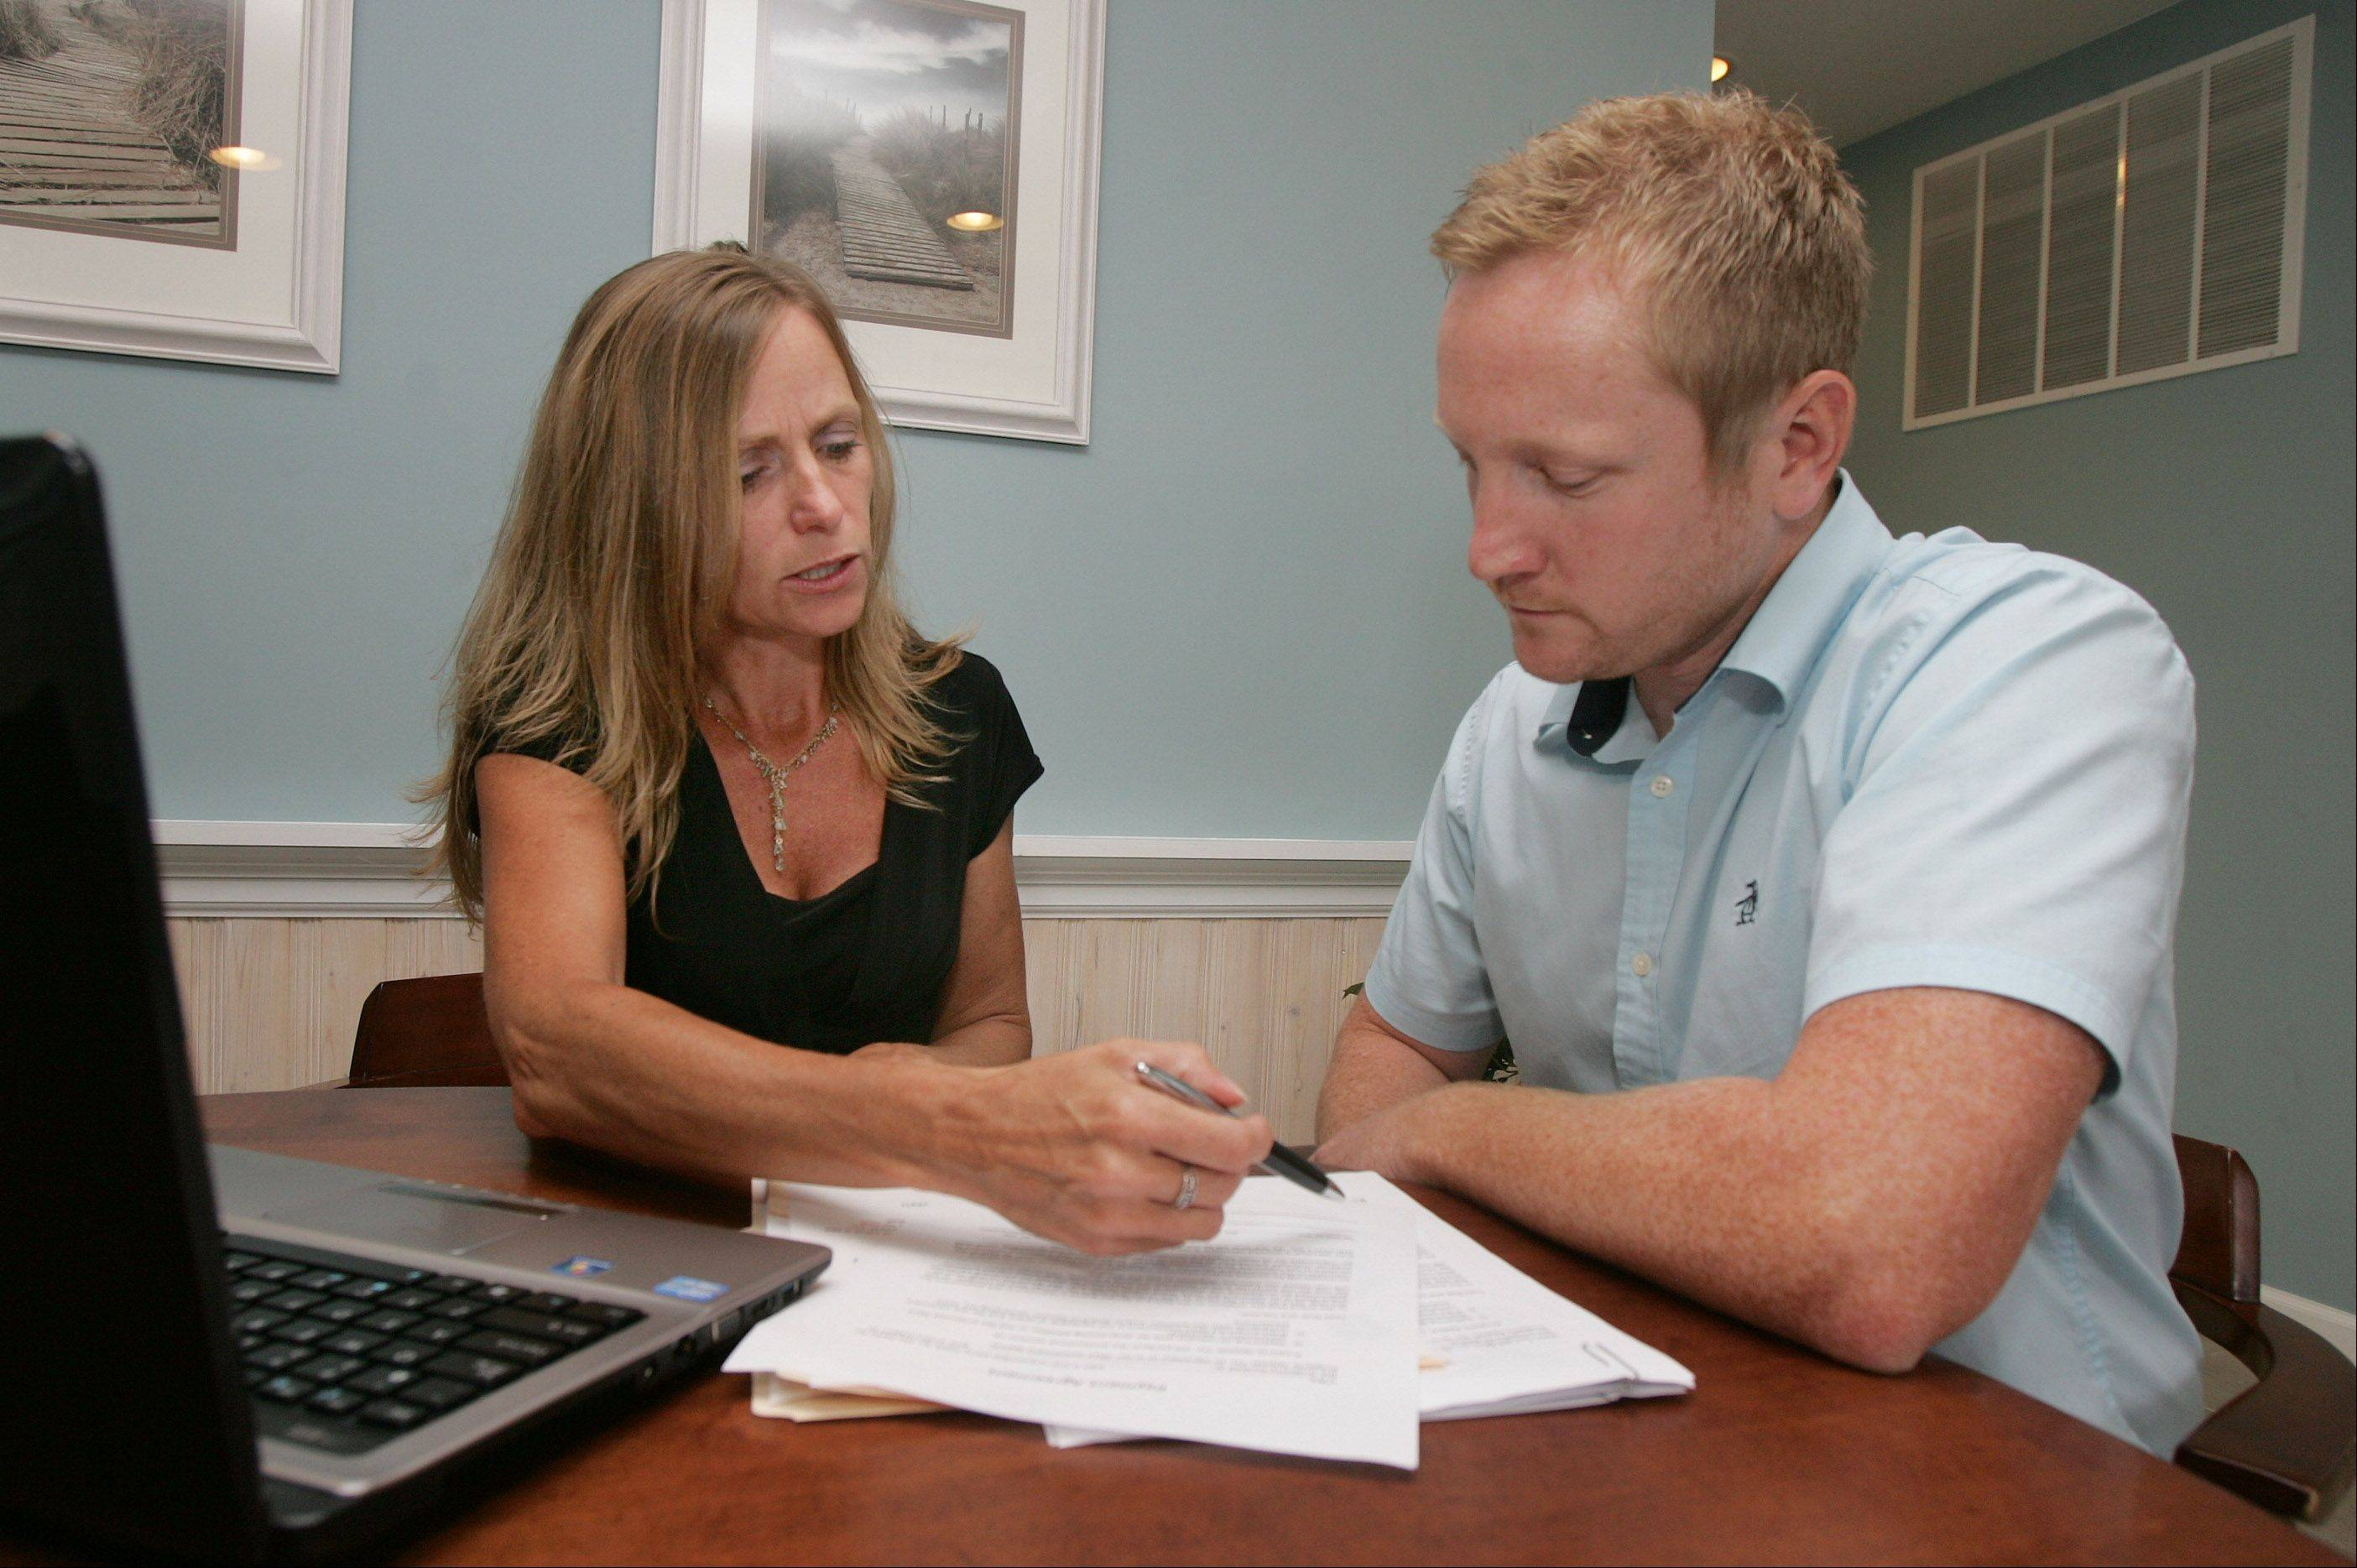 Property Appeal Inc. owner Stephanie Seiwerth works at her office in Wauconda with a client, Shawn Bergfalk, on a tax assessment he is appealing.